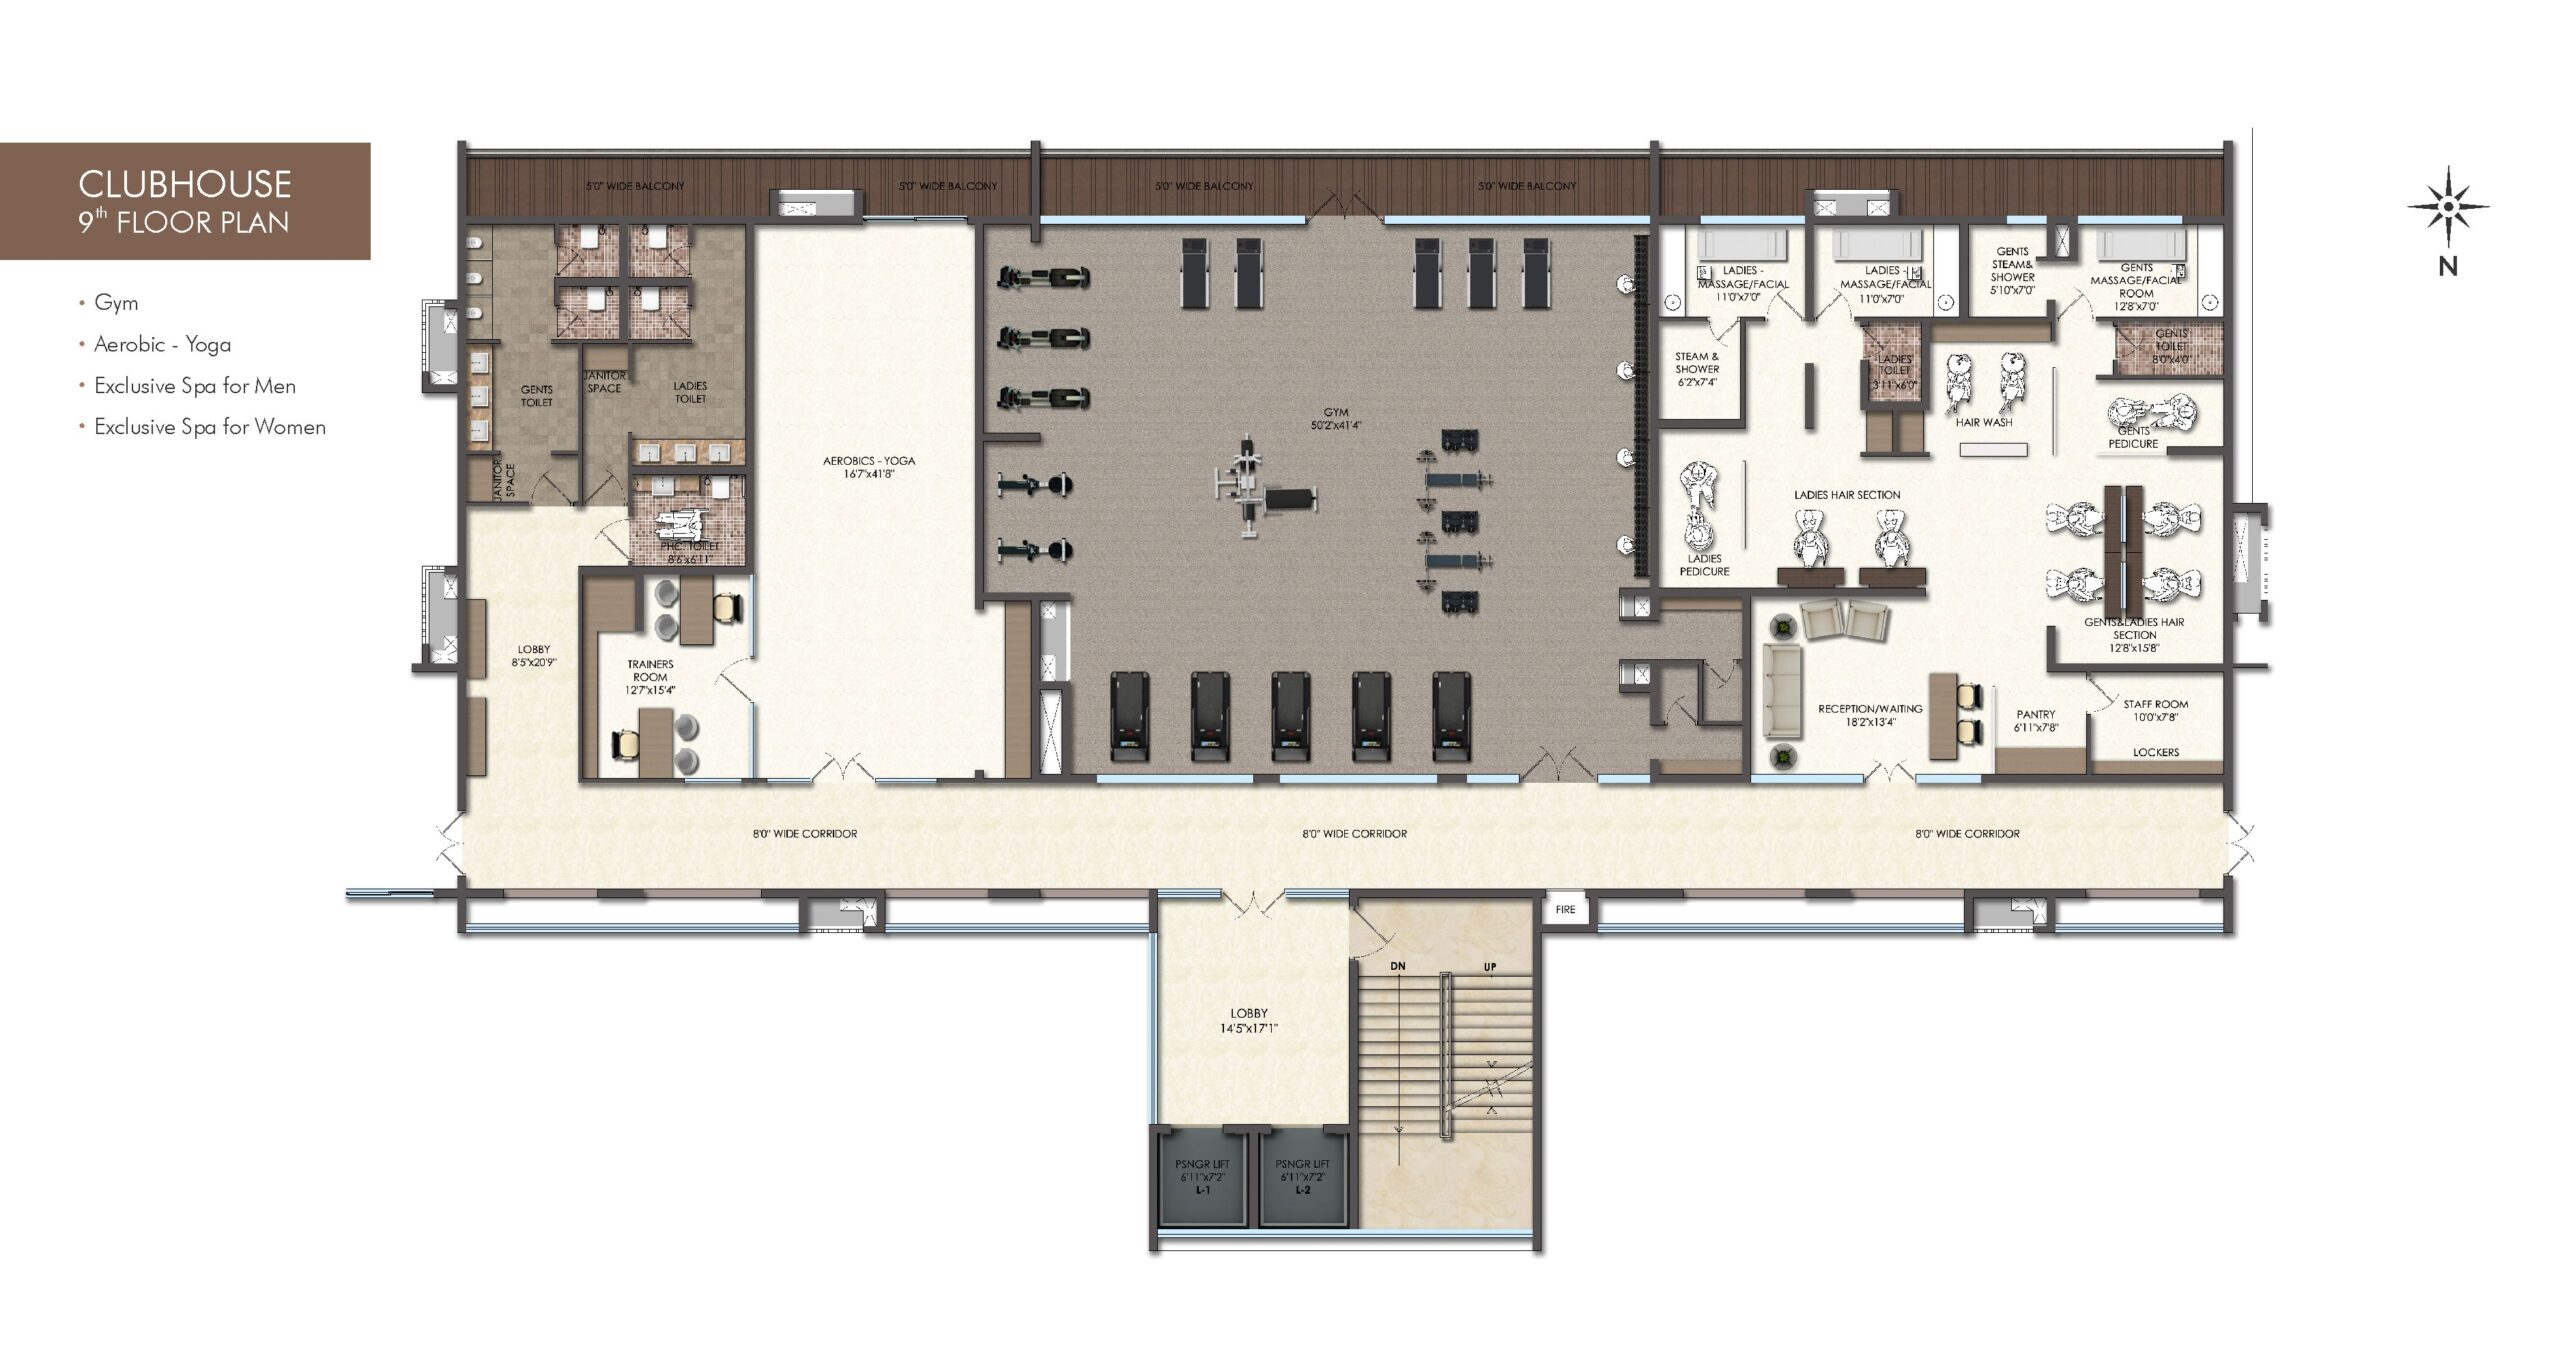 clubhouse_9th_floor_plan